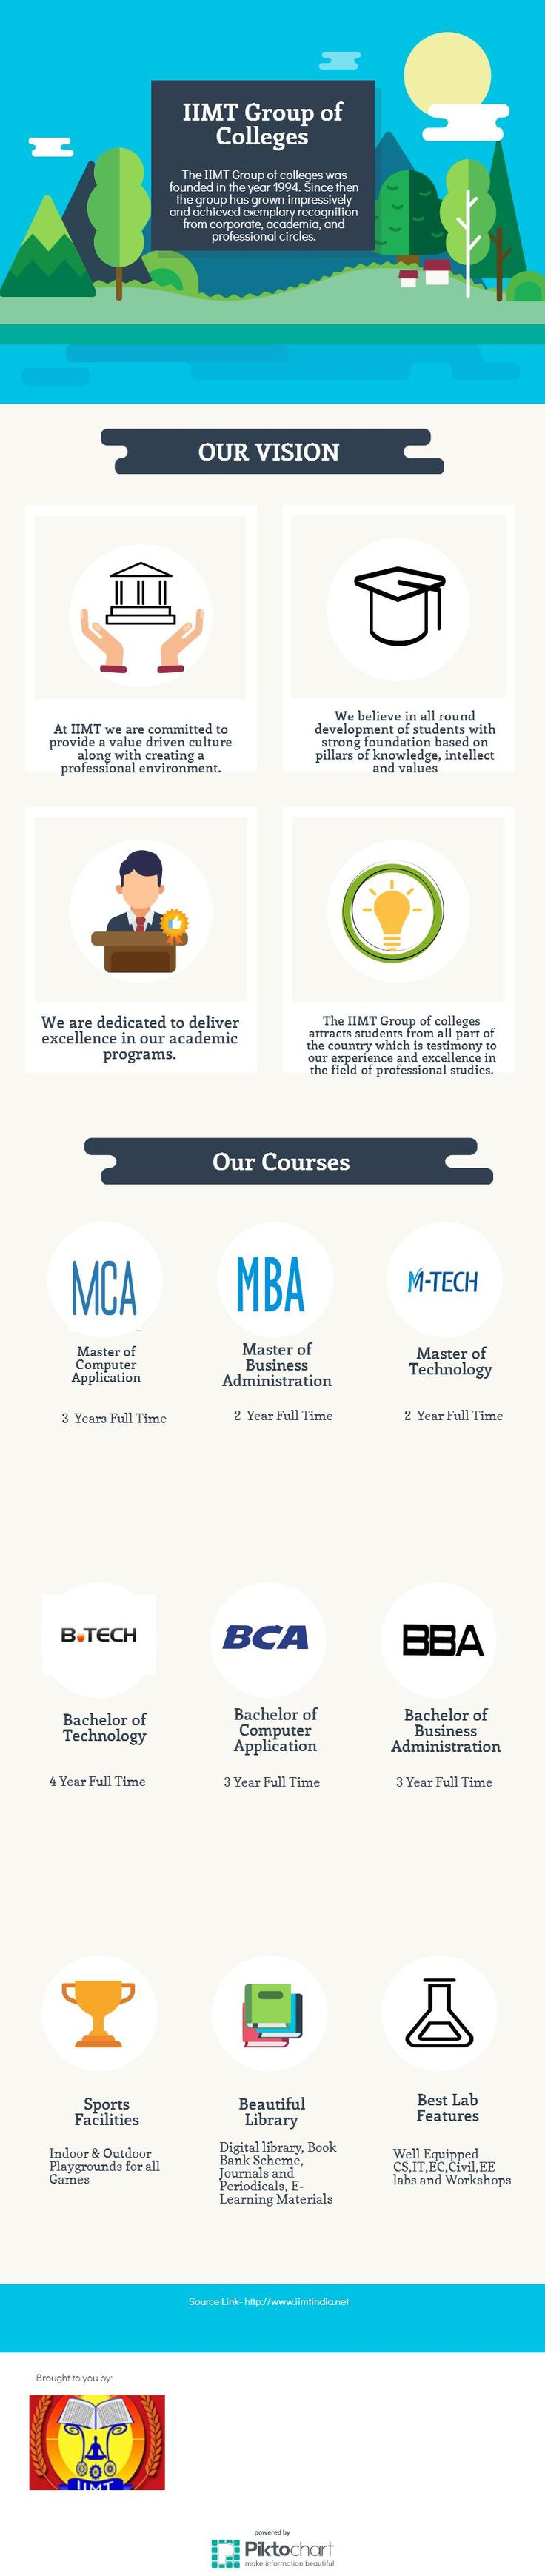 The IIMT Group of colleges was founded in the year 1994, has strived to provide the best engineering and management education to its students through well qualified and dedicated faculty and provision of well equipped contemporary labs. The college affiliated to Uttar Pradesh Technical University, Lucknow and approved by AICTE (All India Council for Technical Education). We are offering numerous management courses like B.Tech, MCA, BCA, MBA, PGDM and BBA etc.